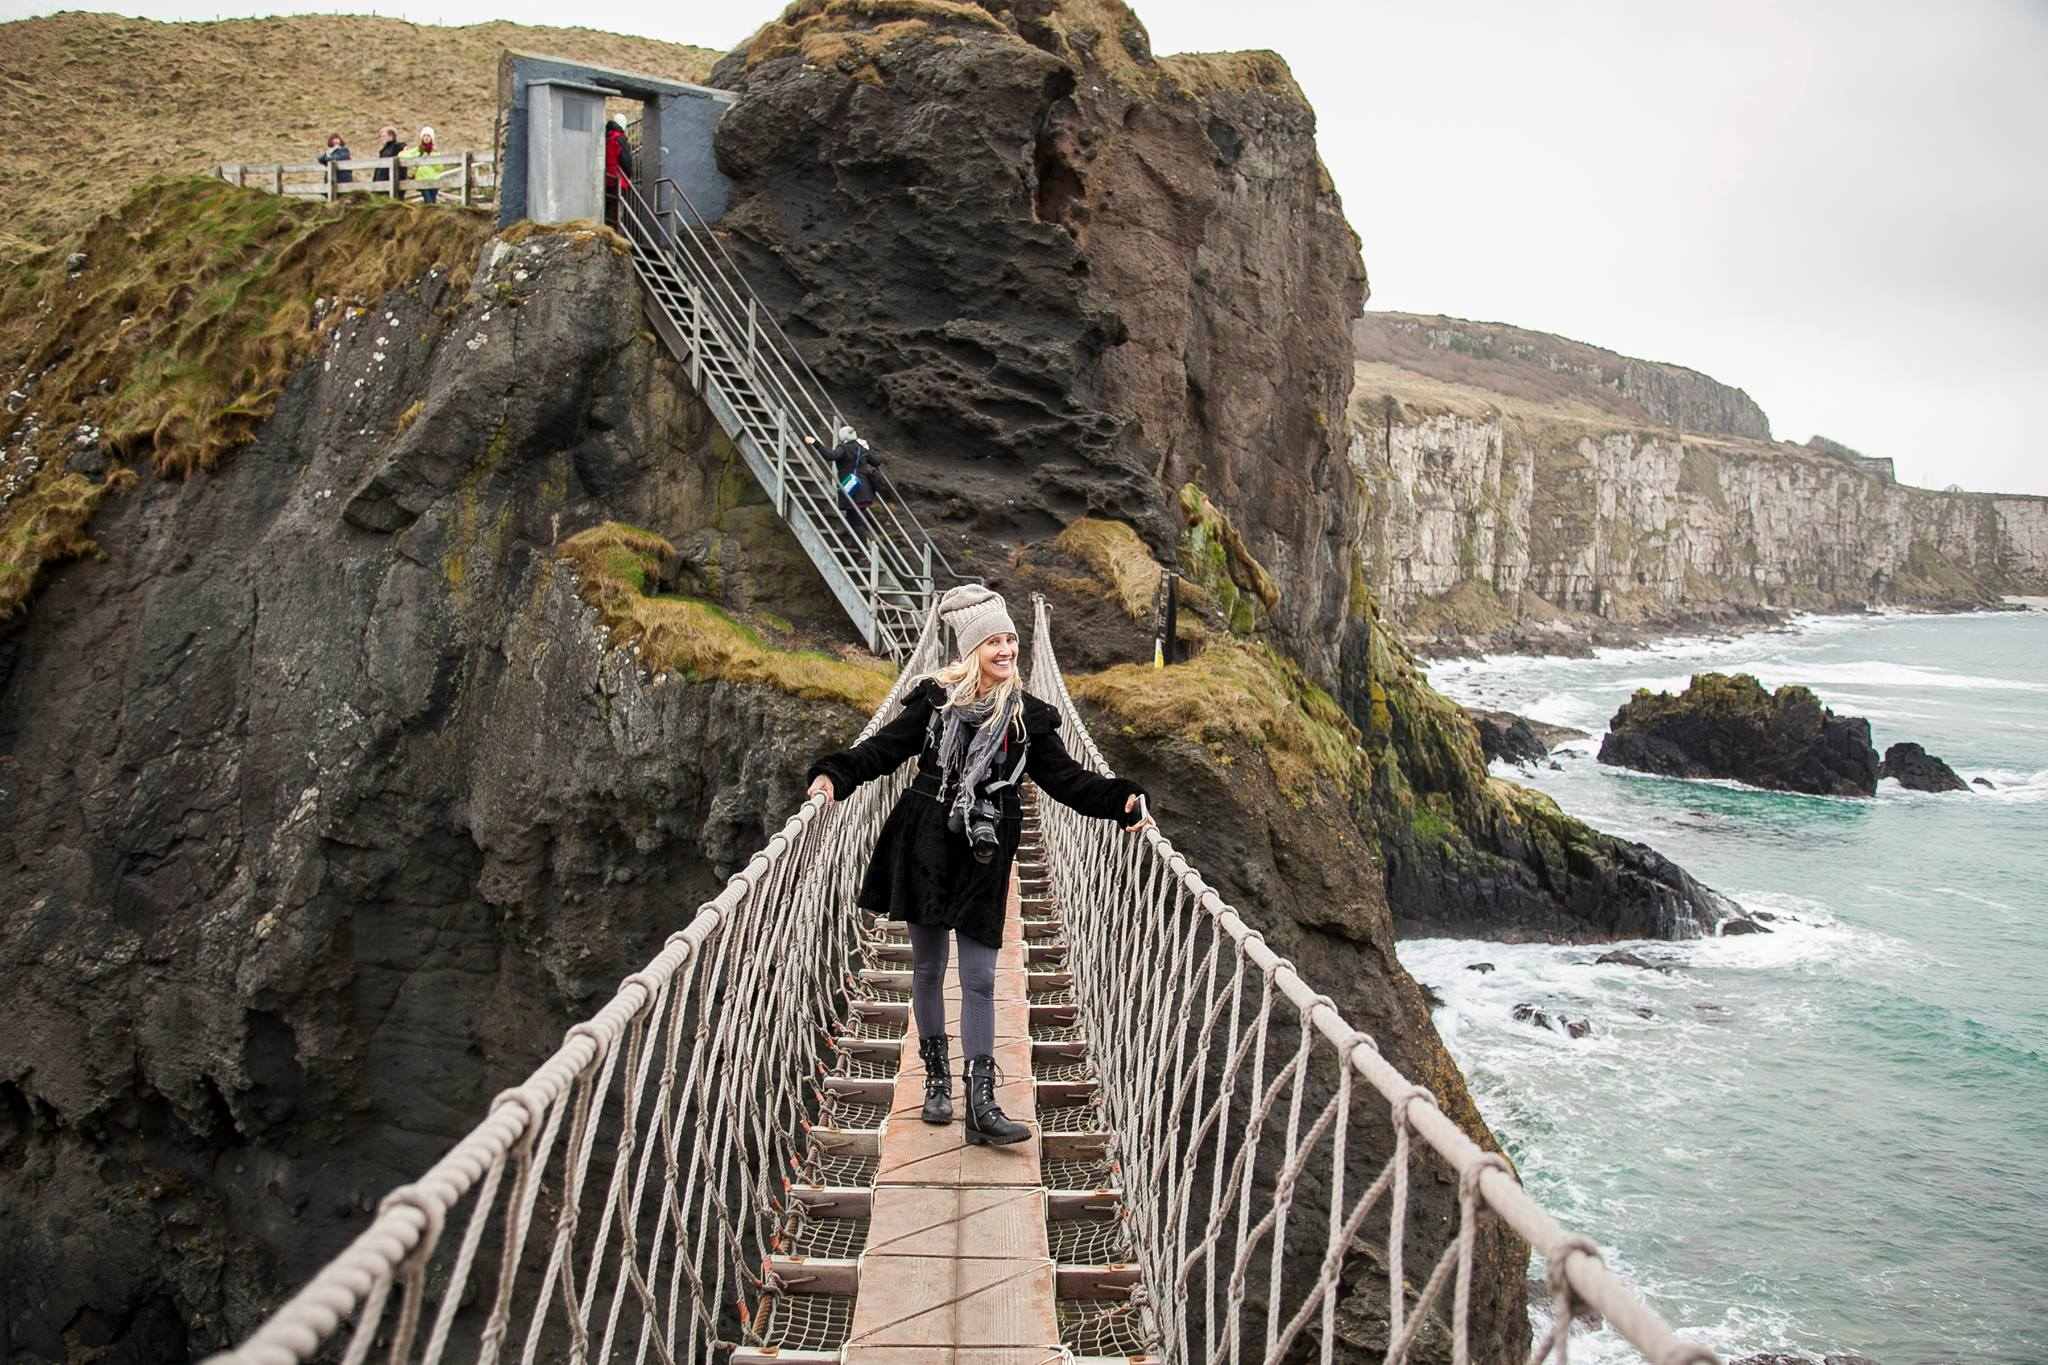 County Antrim, Northern Ireland, Carrick-a-Rede Rope Bridge, traveling in Ireland